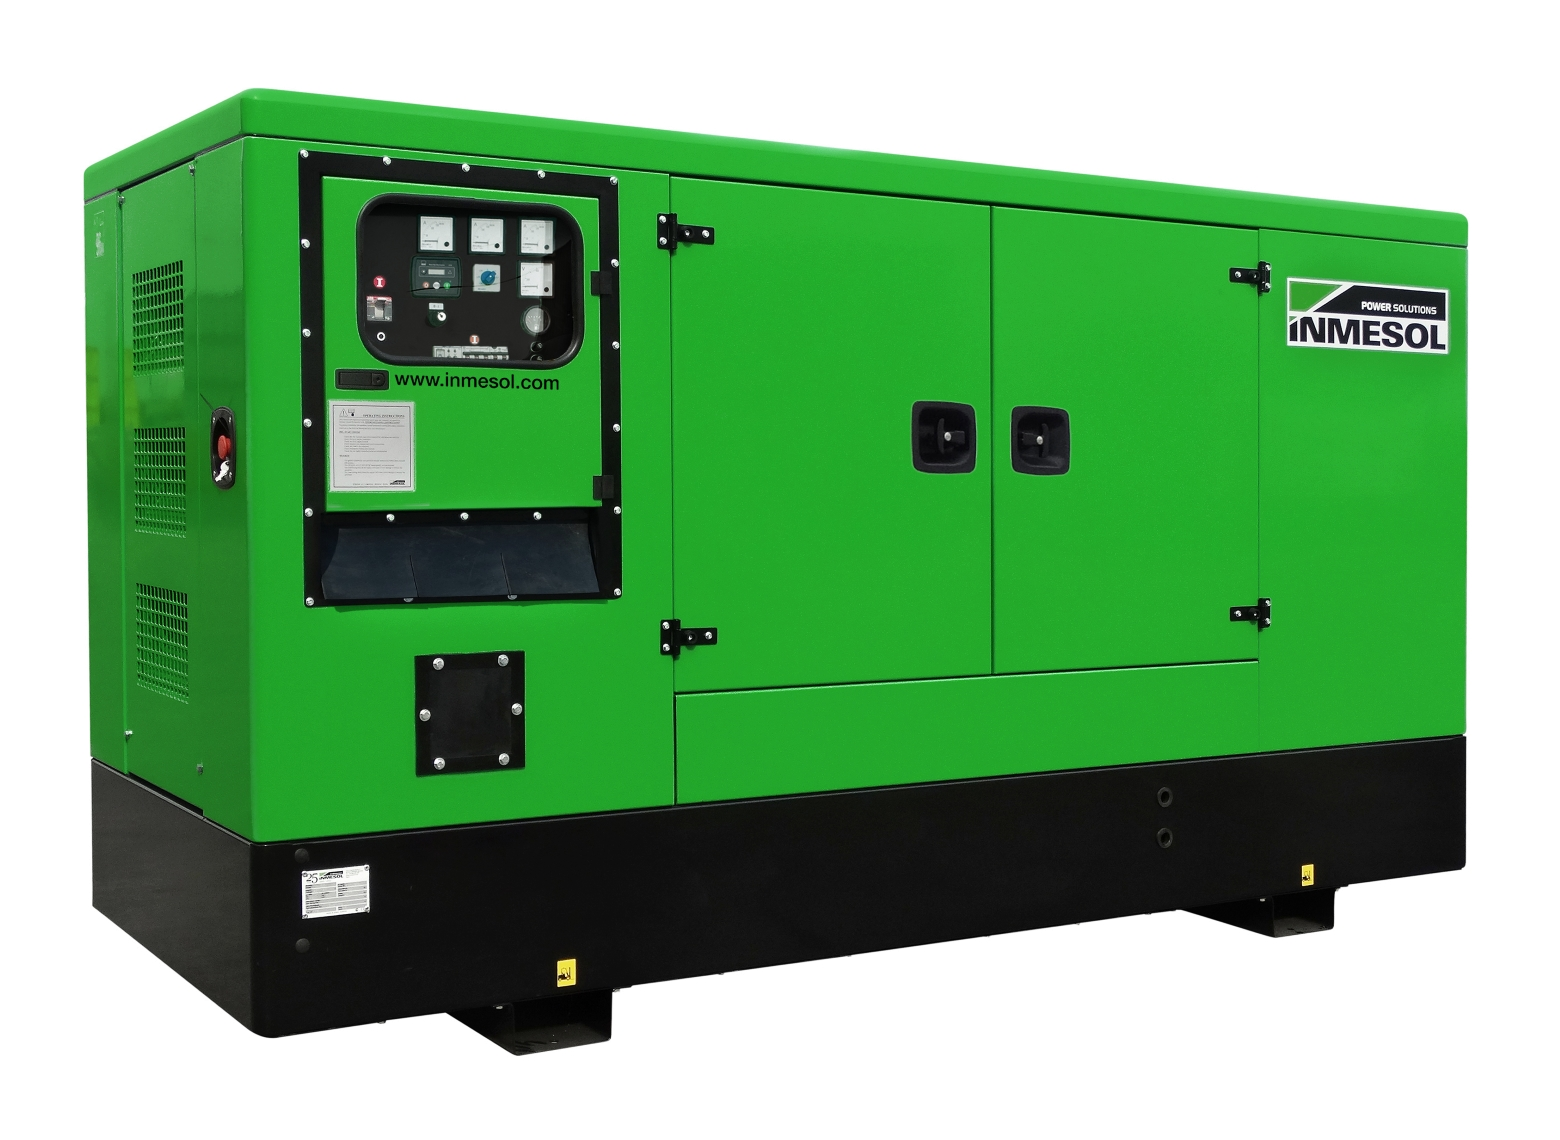 Generator with manual control panel.II-085 - FPT - N45SM2A(60HZ) - 1.800 R.P.M. | 60 Hz